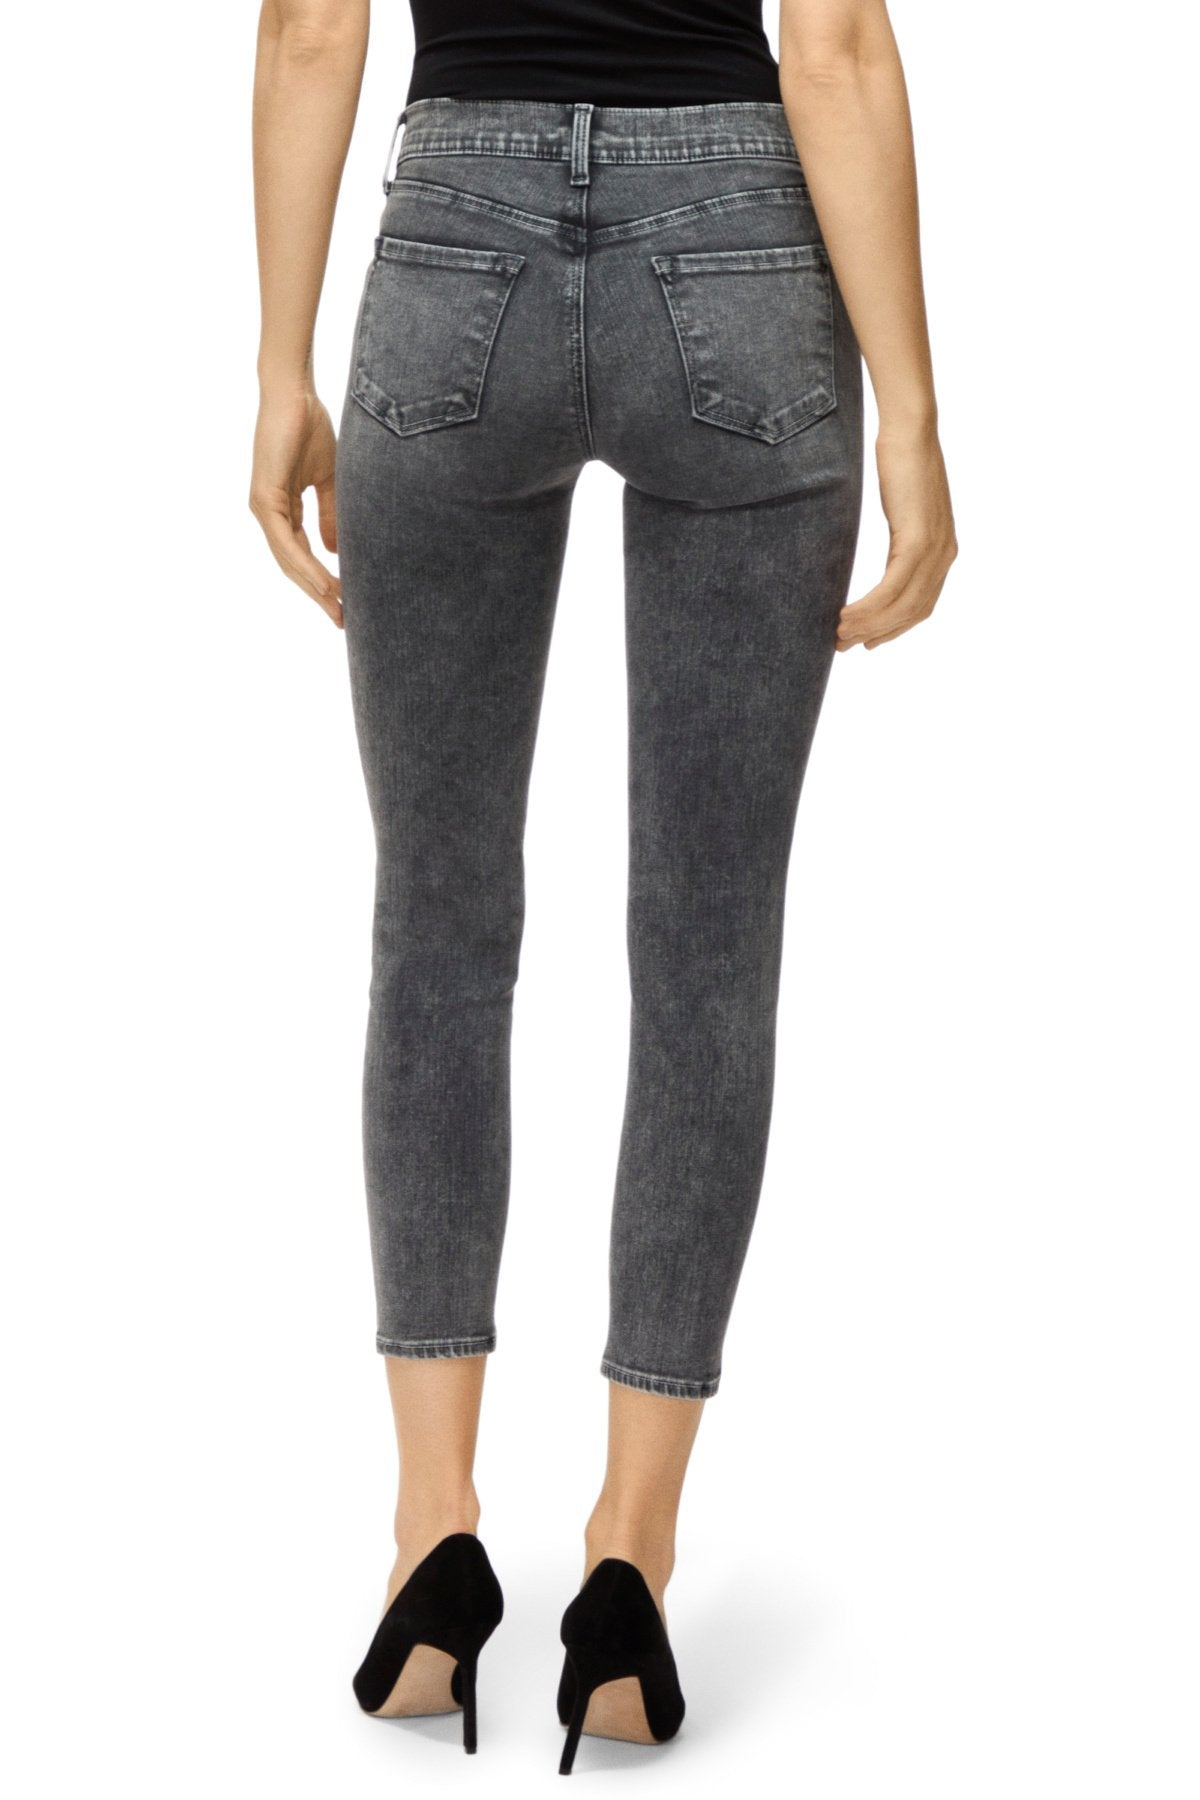 Edwards Imports Ltd Womens Jeans J Brand | 835 Mid Rise Cropped Skinny Jeans - Hook Up